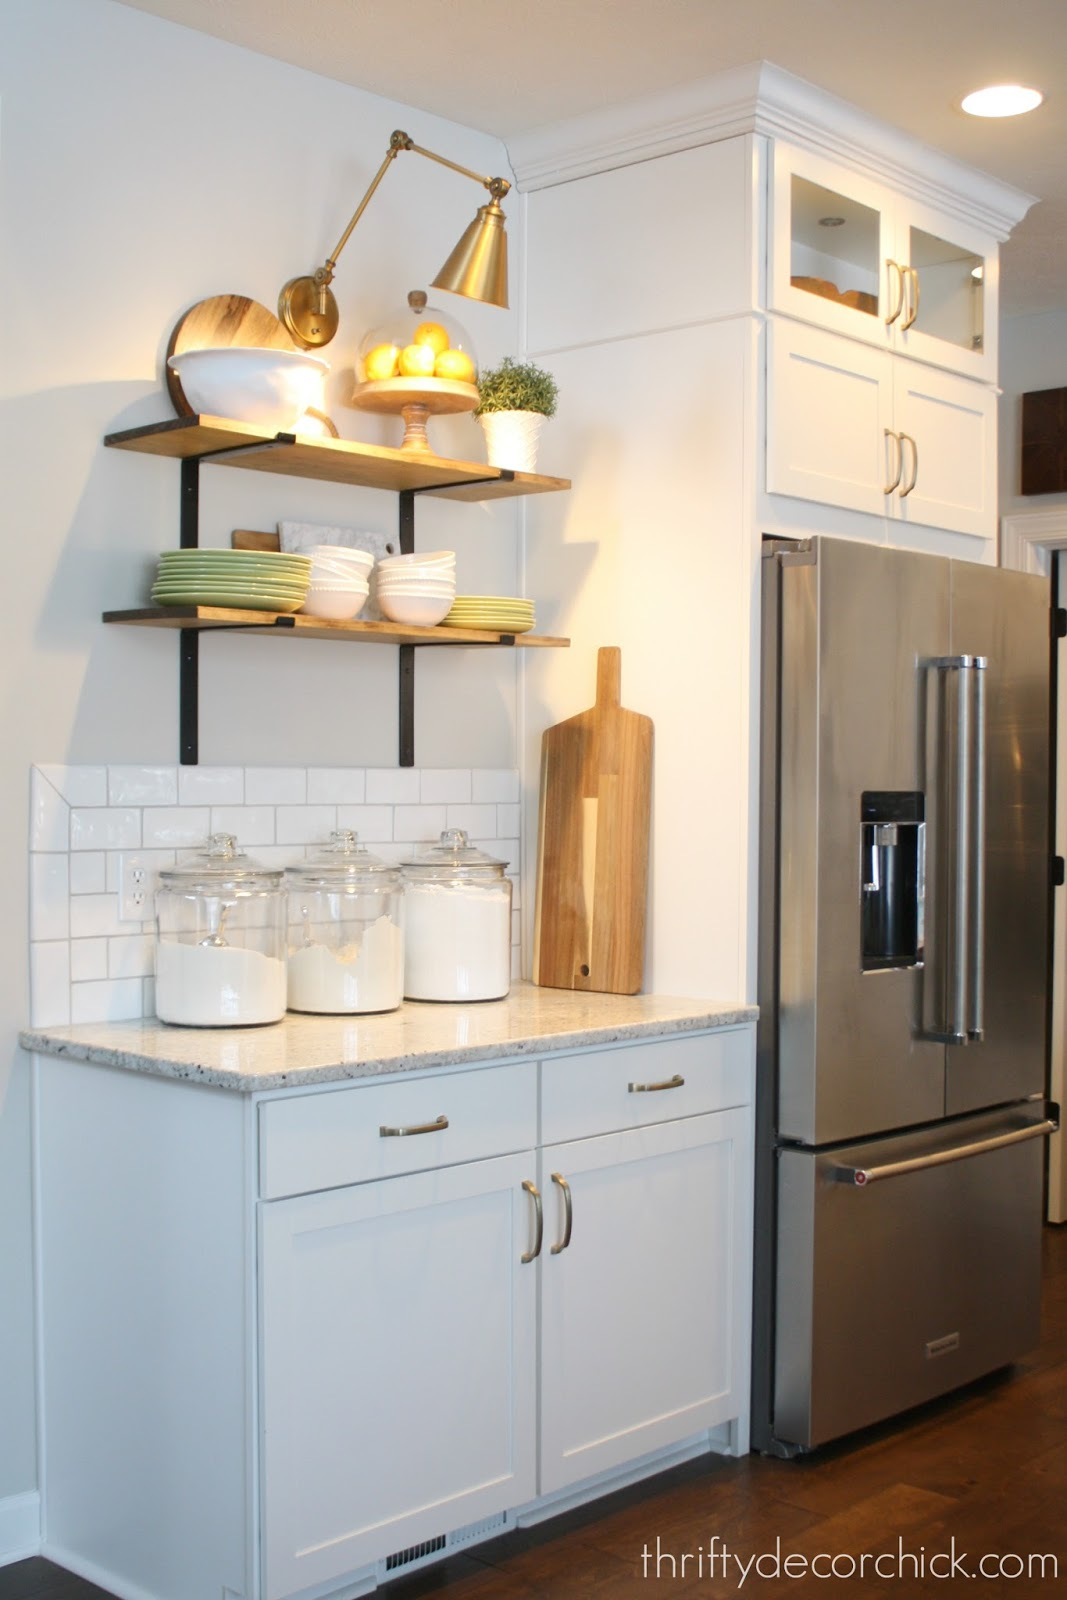 Hanging shelves in the kitchen from Thrifty Decor Chick